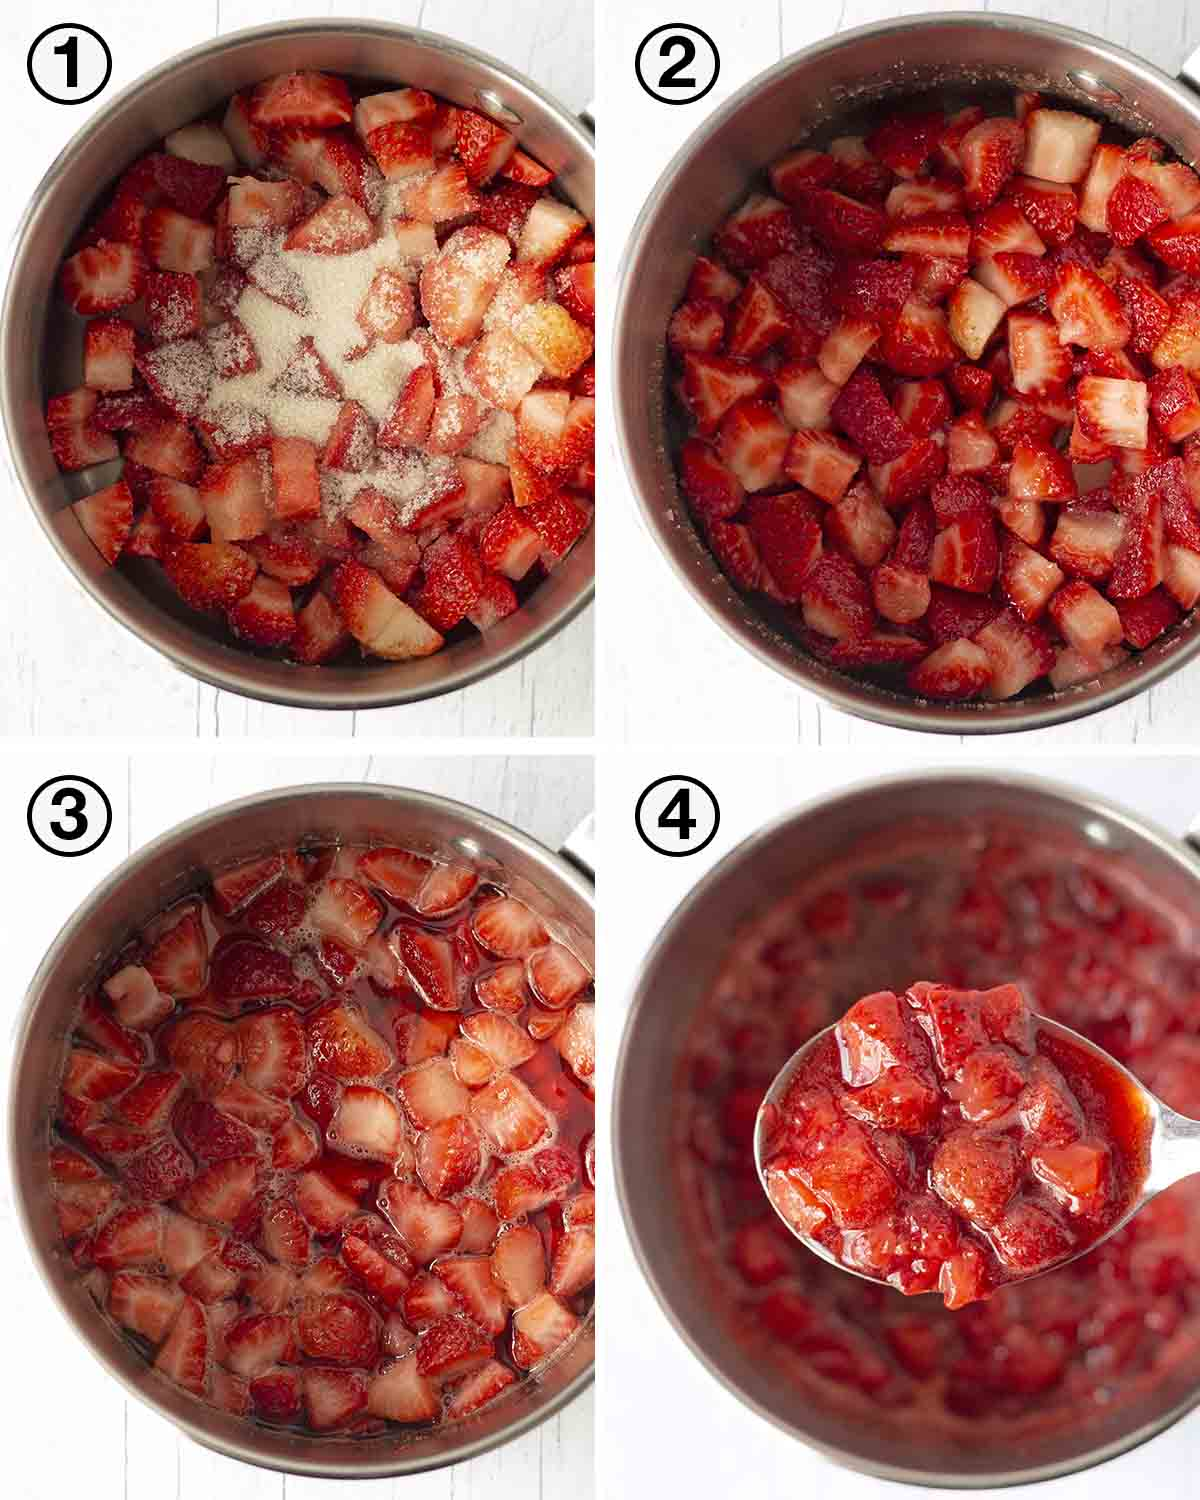 A collage of four images showing the sequence of steps needed to make vegan strawberry sauce.